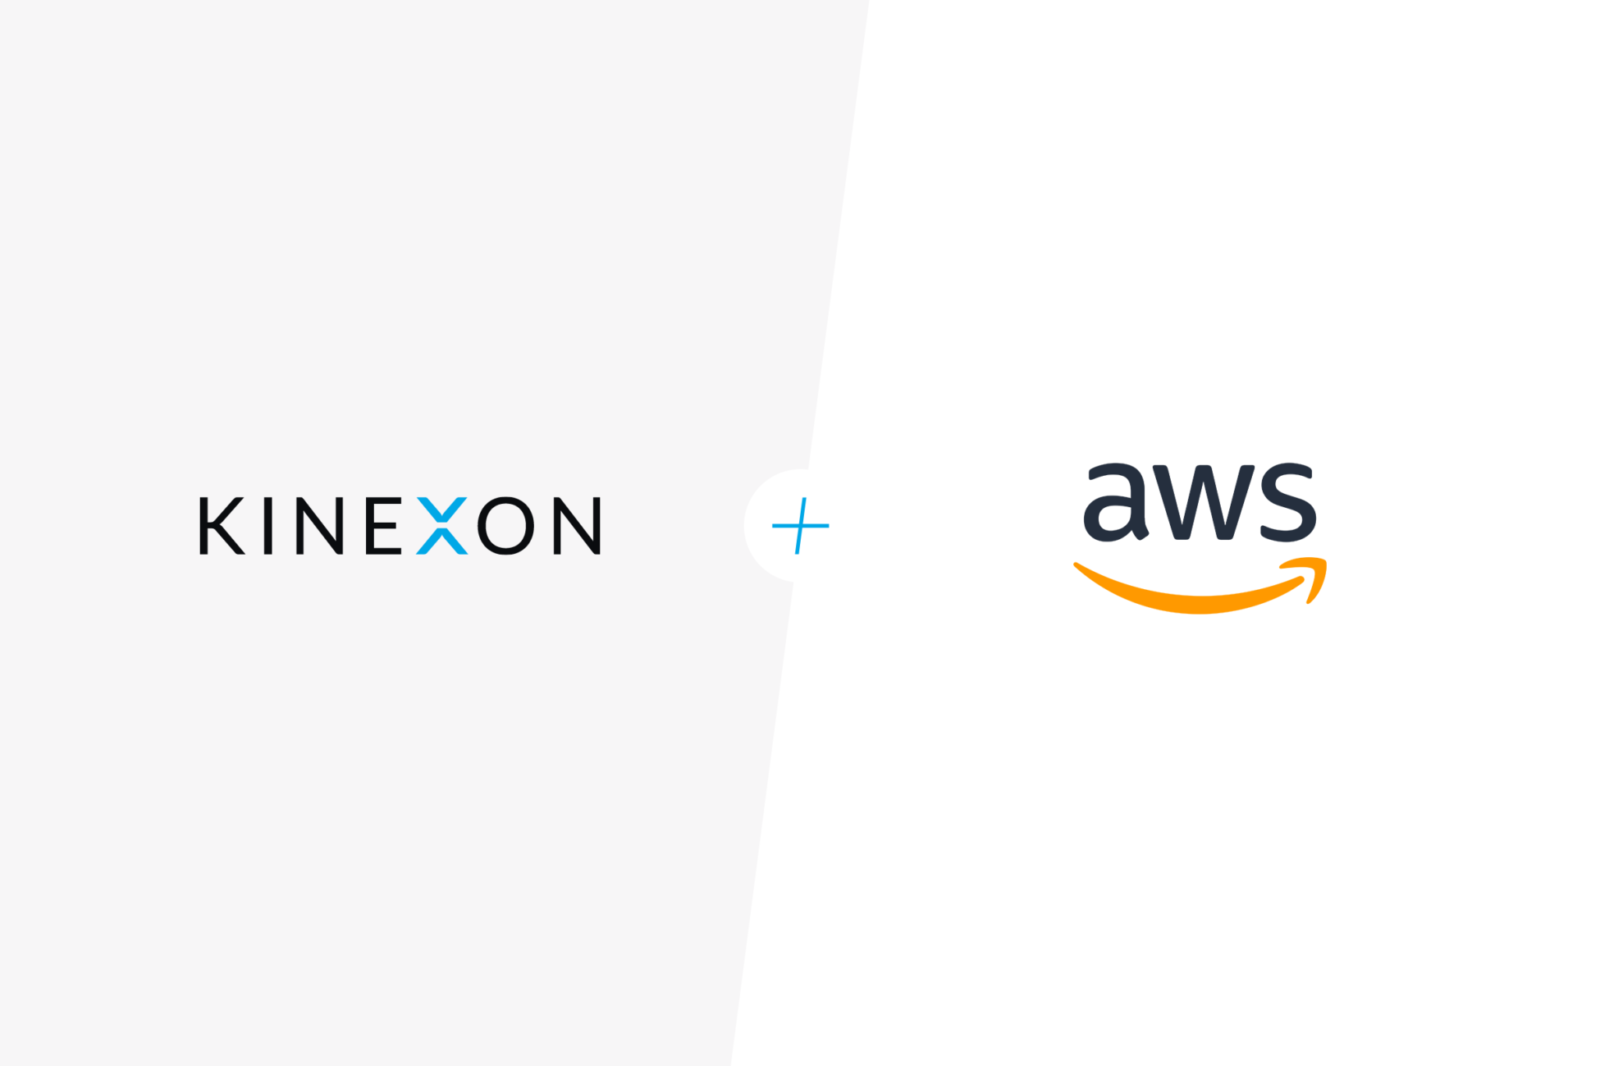 KINEXON X AWS website